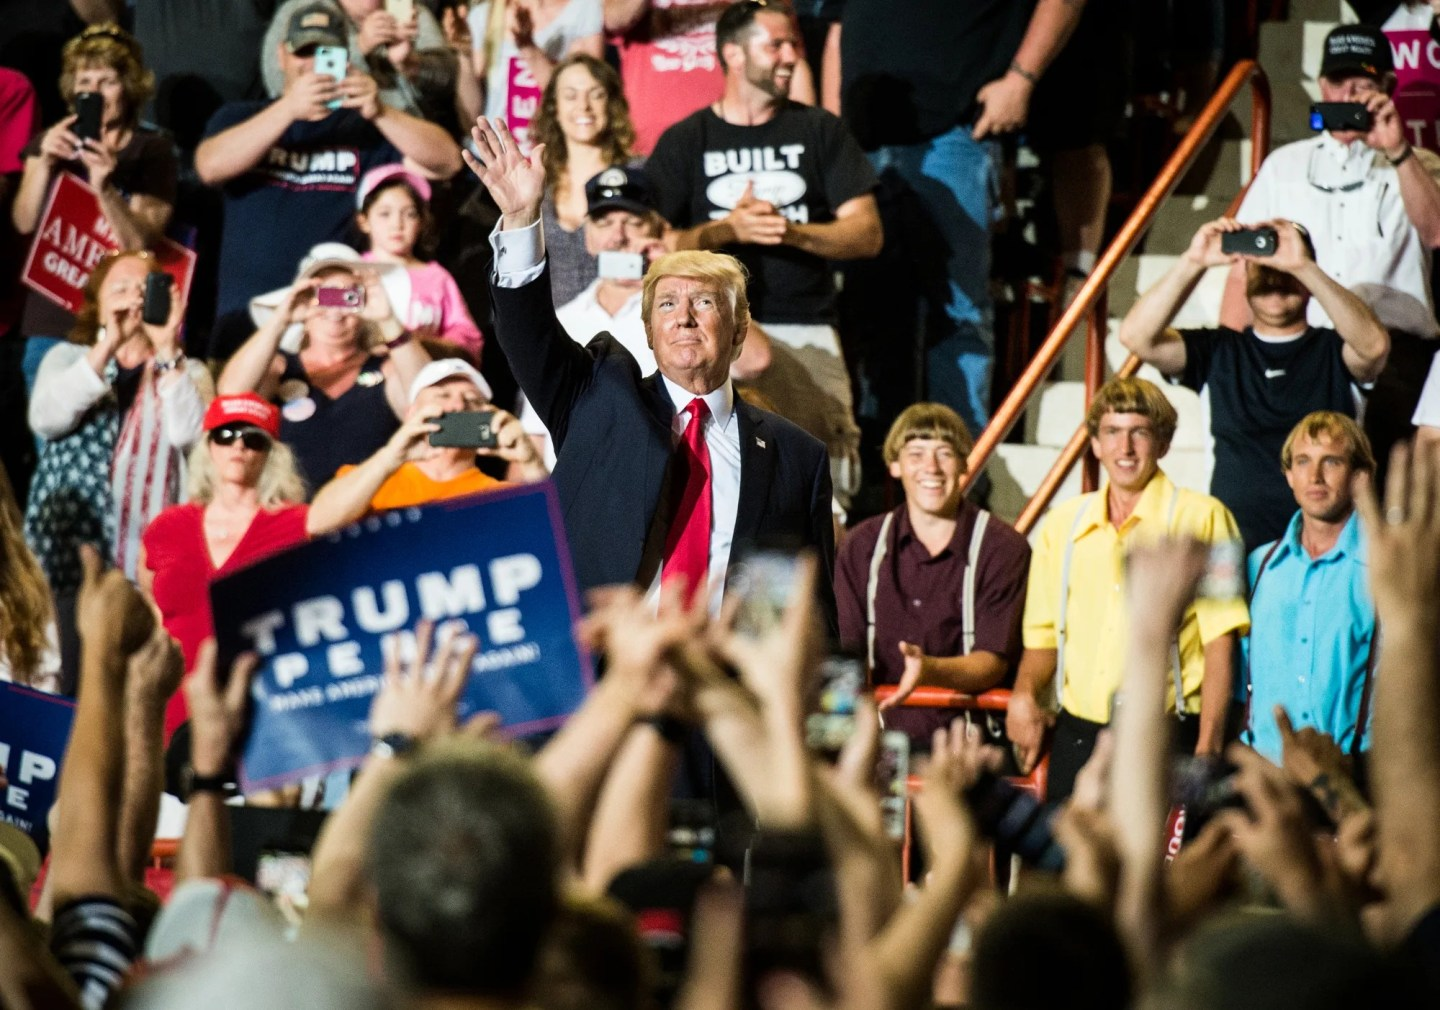 President Donald Trump addresses the crowd during a rally at the Farm Show Complex in Harrisburg, Pennsylvania, on April 29, 2017, the 100th day of his presidency.